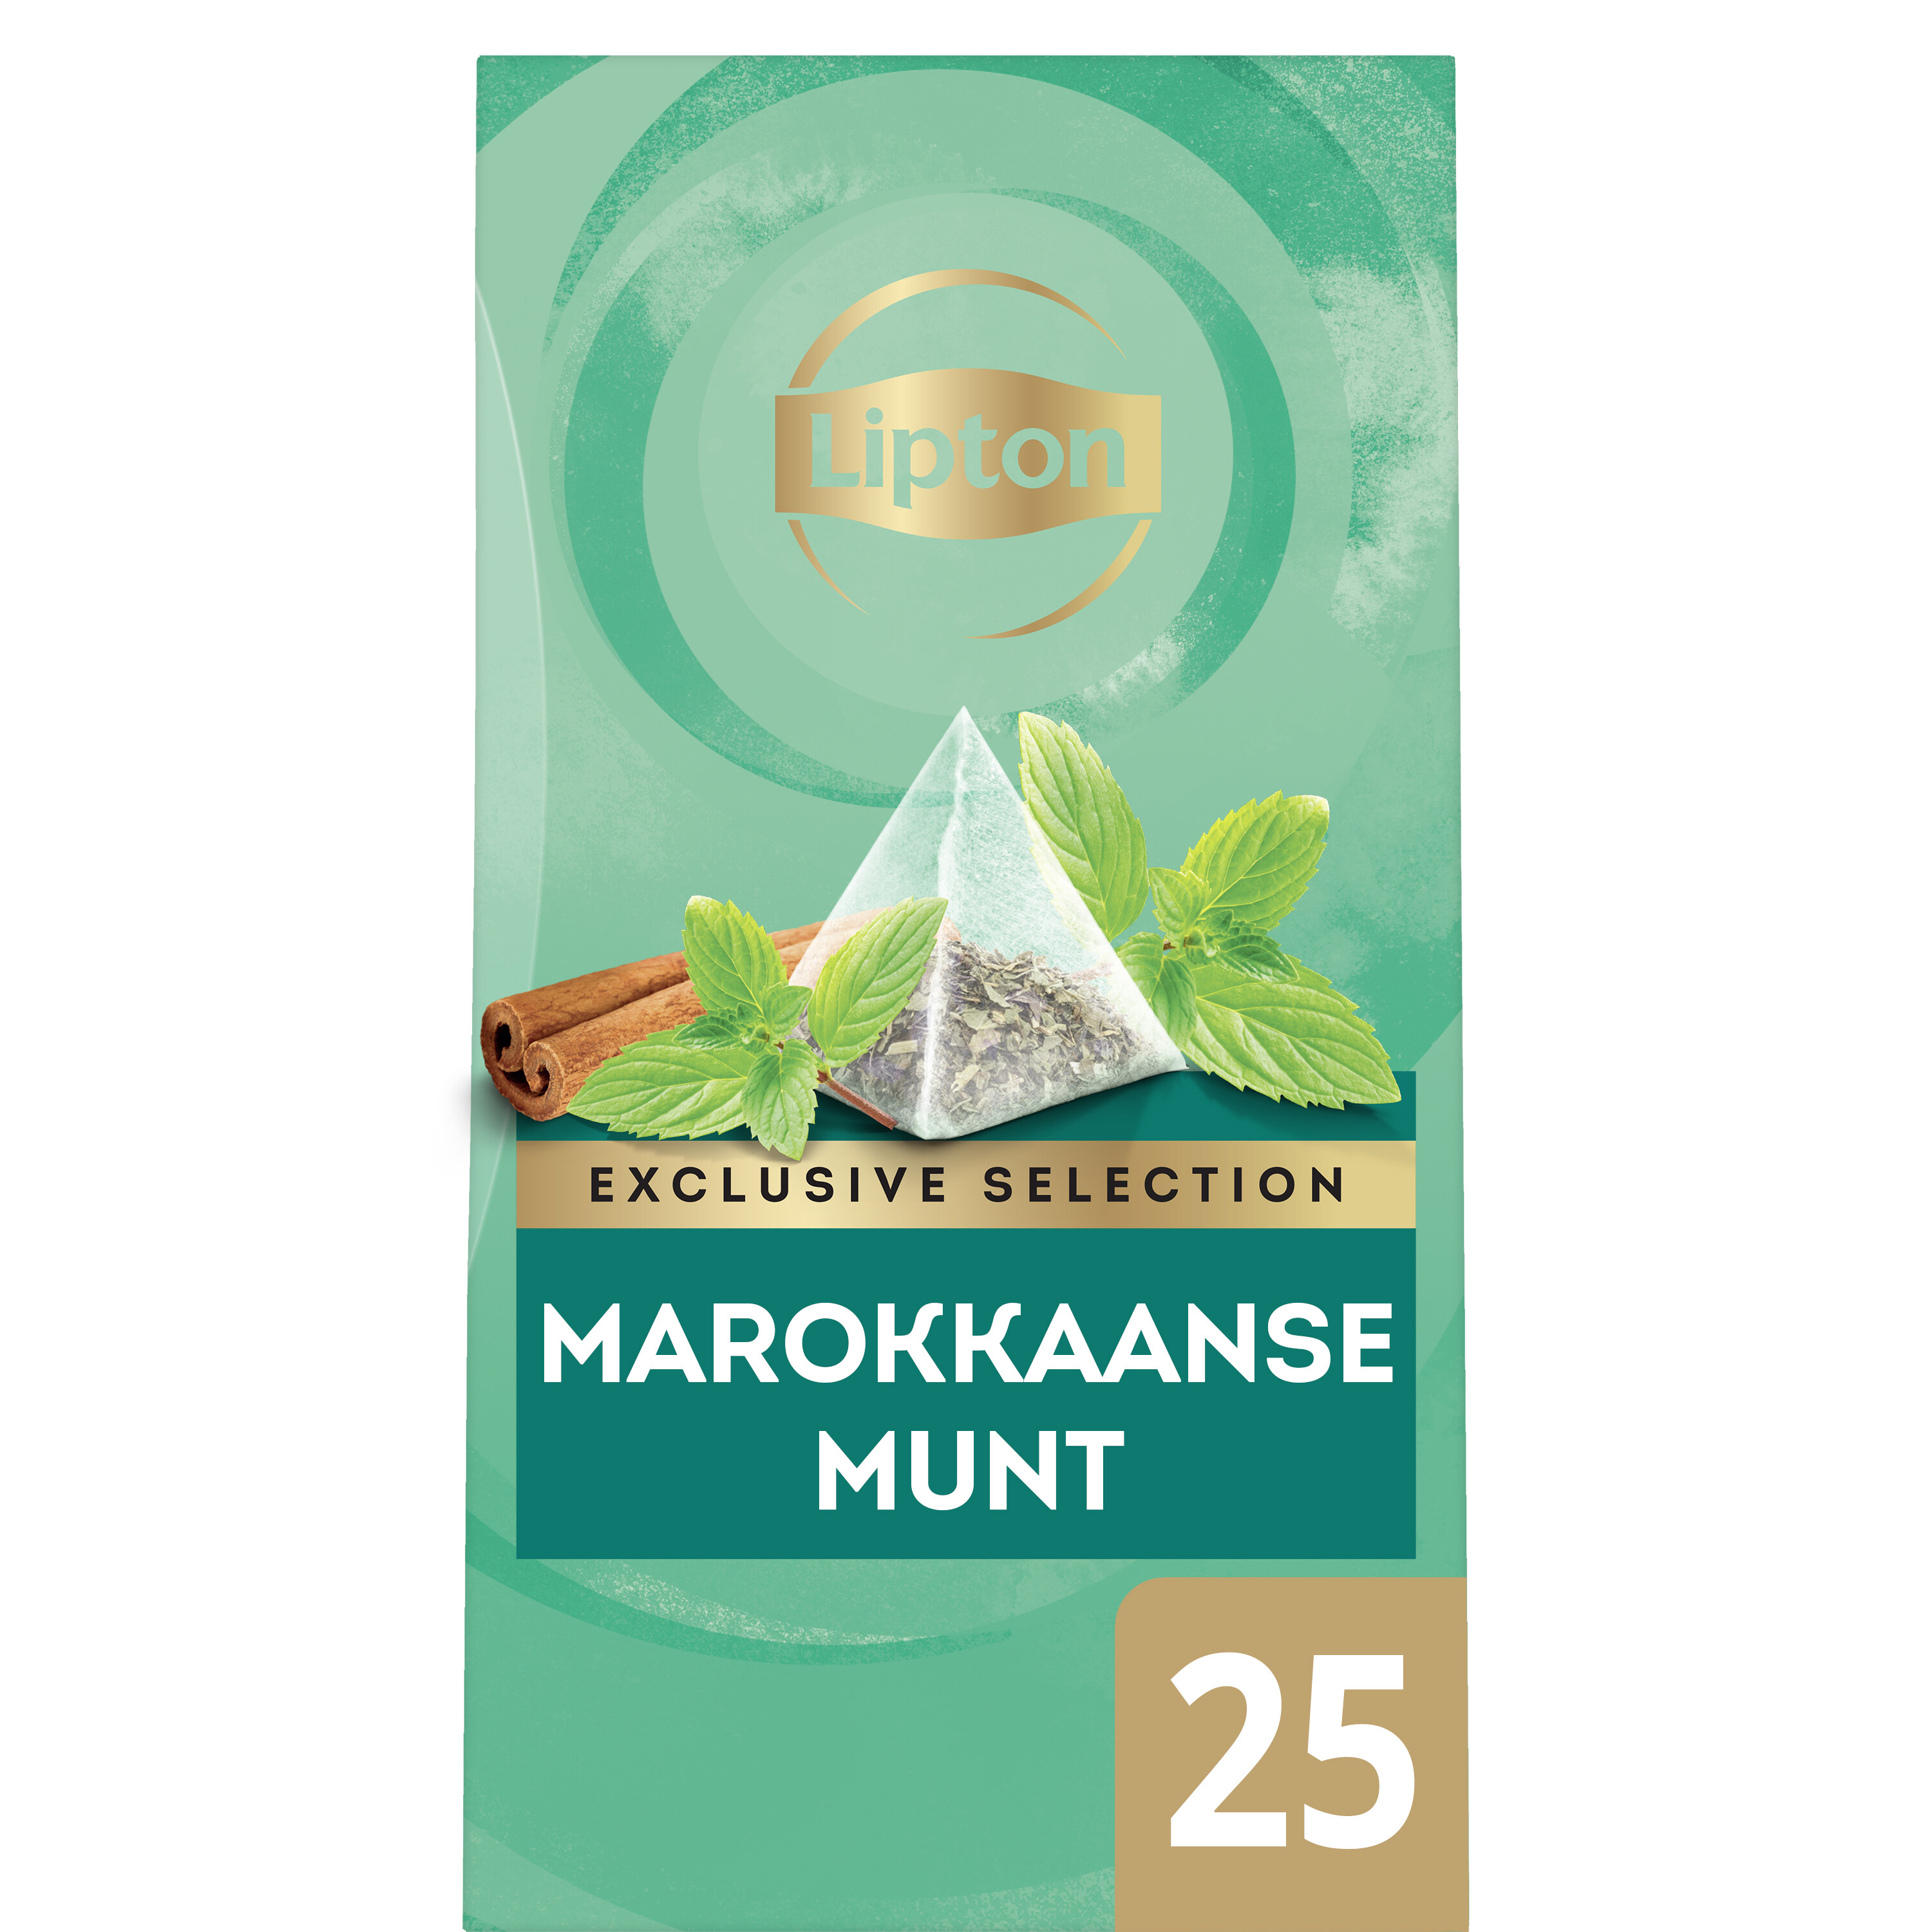 Marokkaanse munt thee lipton exclusive selection | KoffiePartners